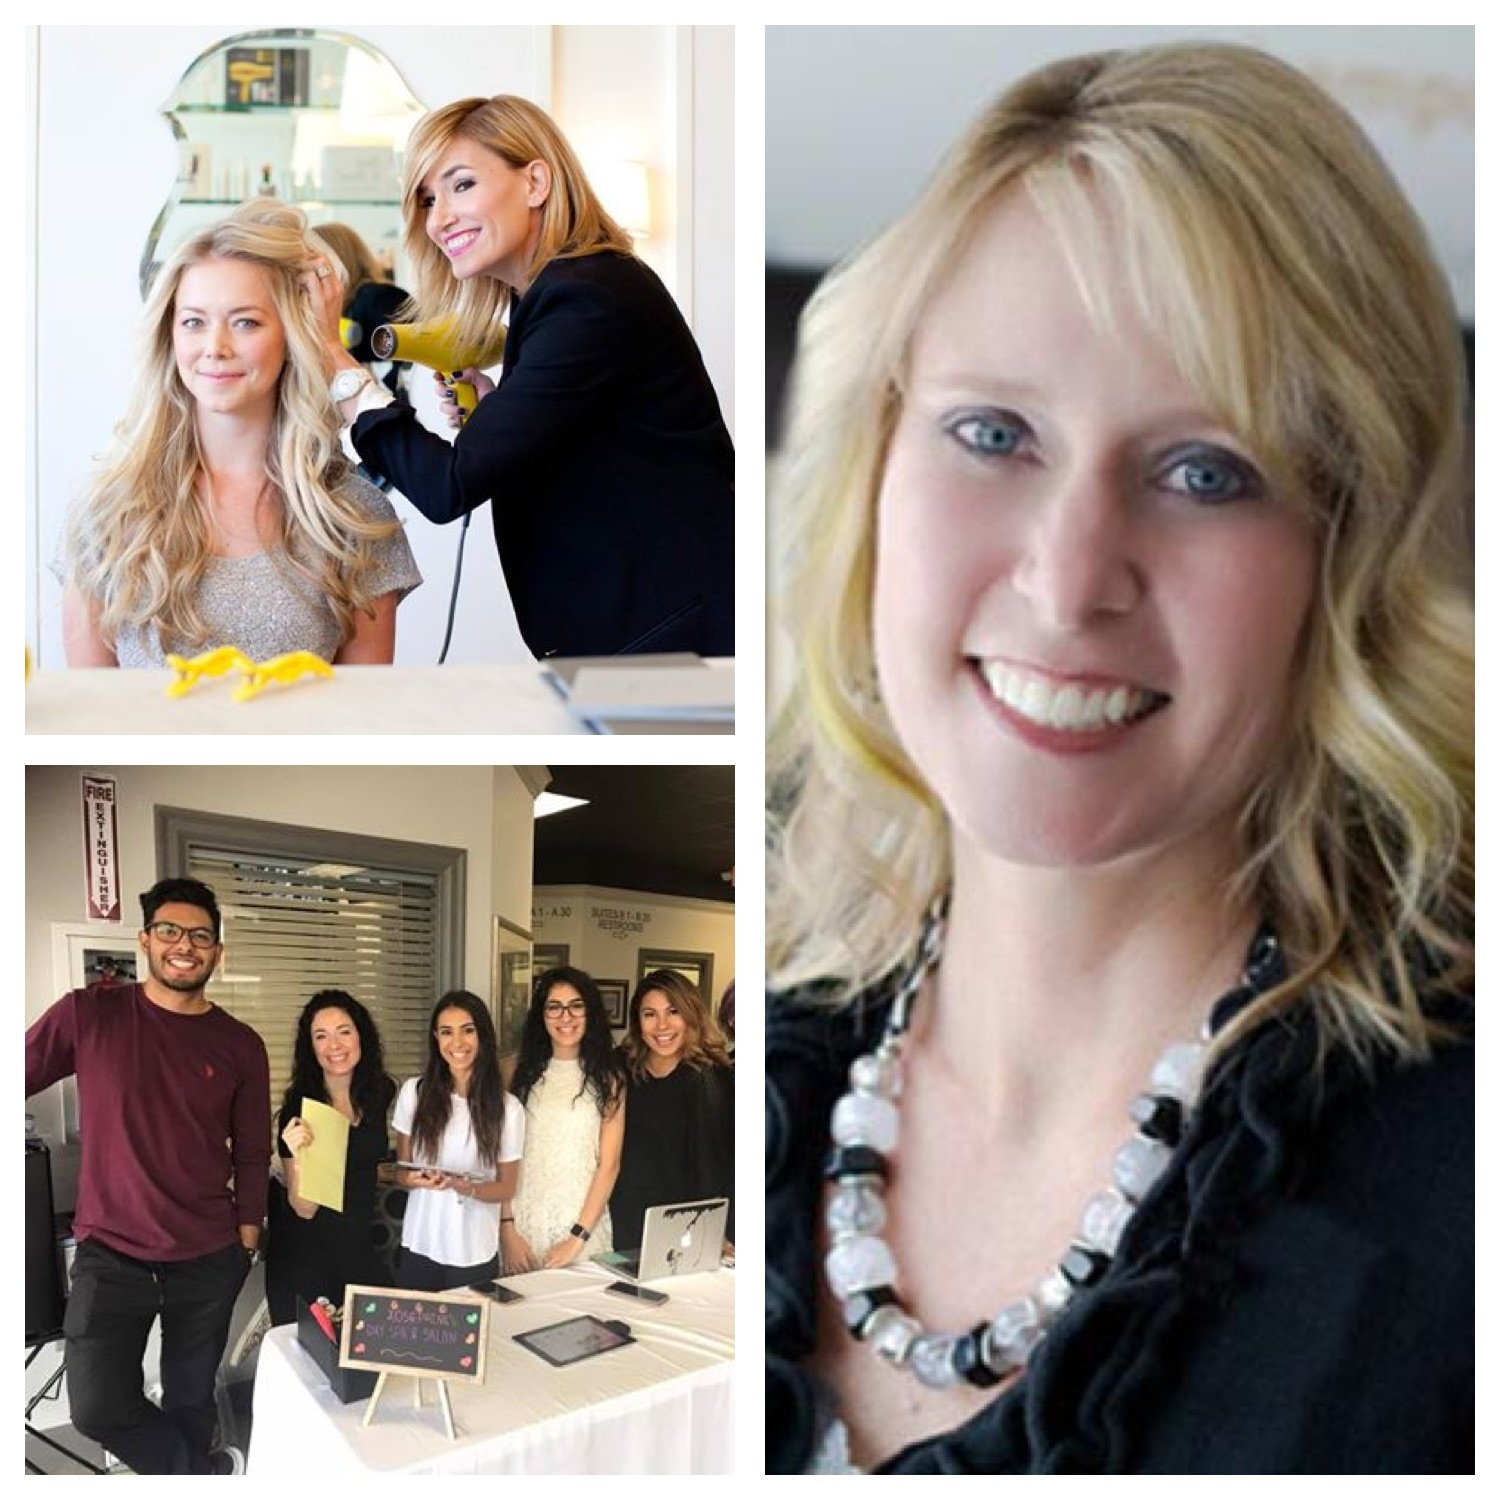 Salon Today Recommends: Recruiting Students, Maximizing Your Color Business & Retail Tips